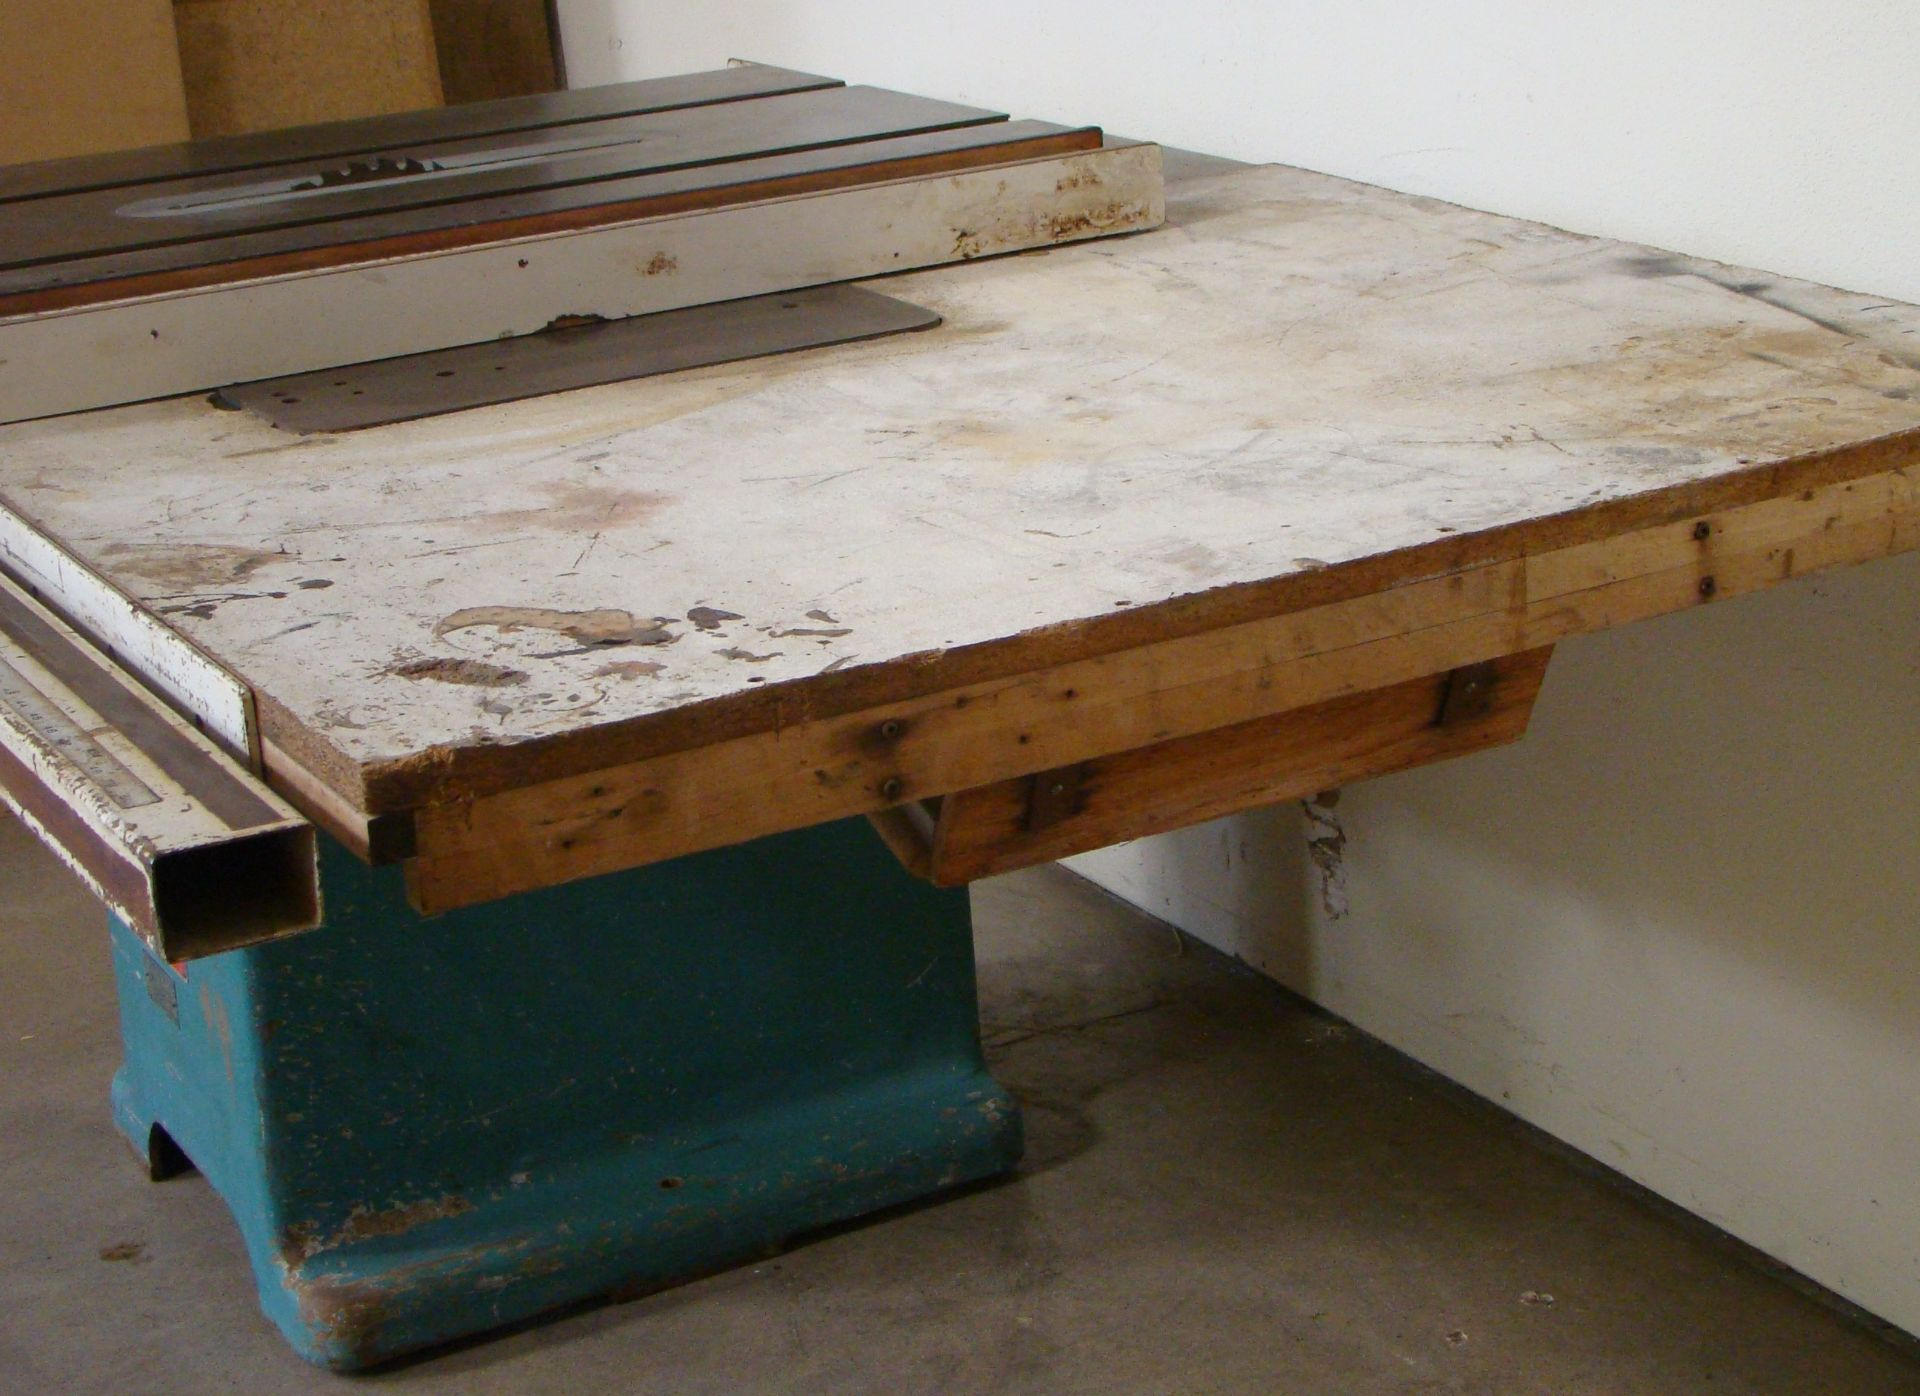 "Oliver 14"" Table Saw, W/ 50"" Biesemeyer Rails Fence 5HP 220 Volts 3 Phase Motor - Image 7 of 7"